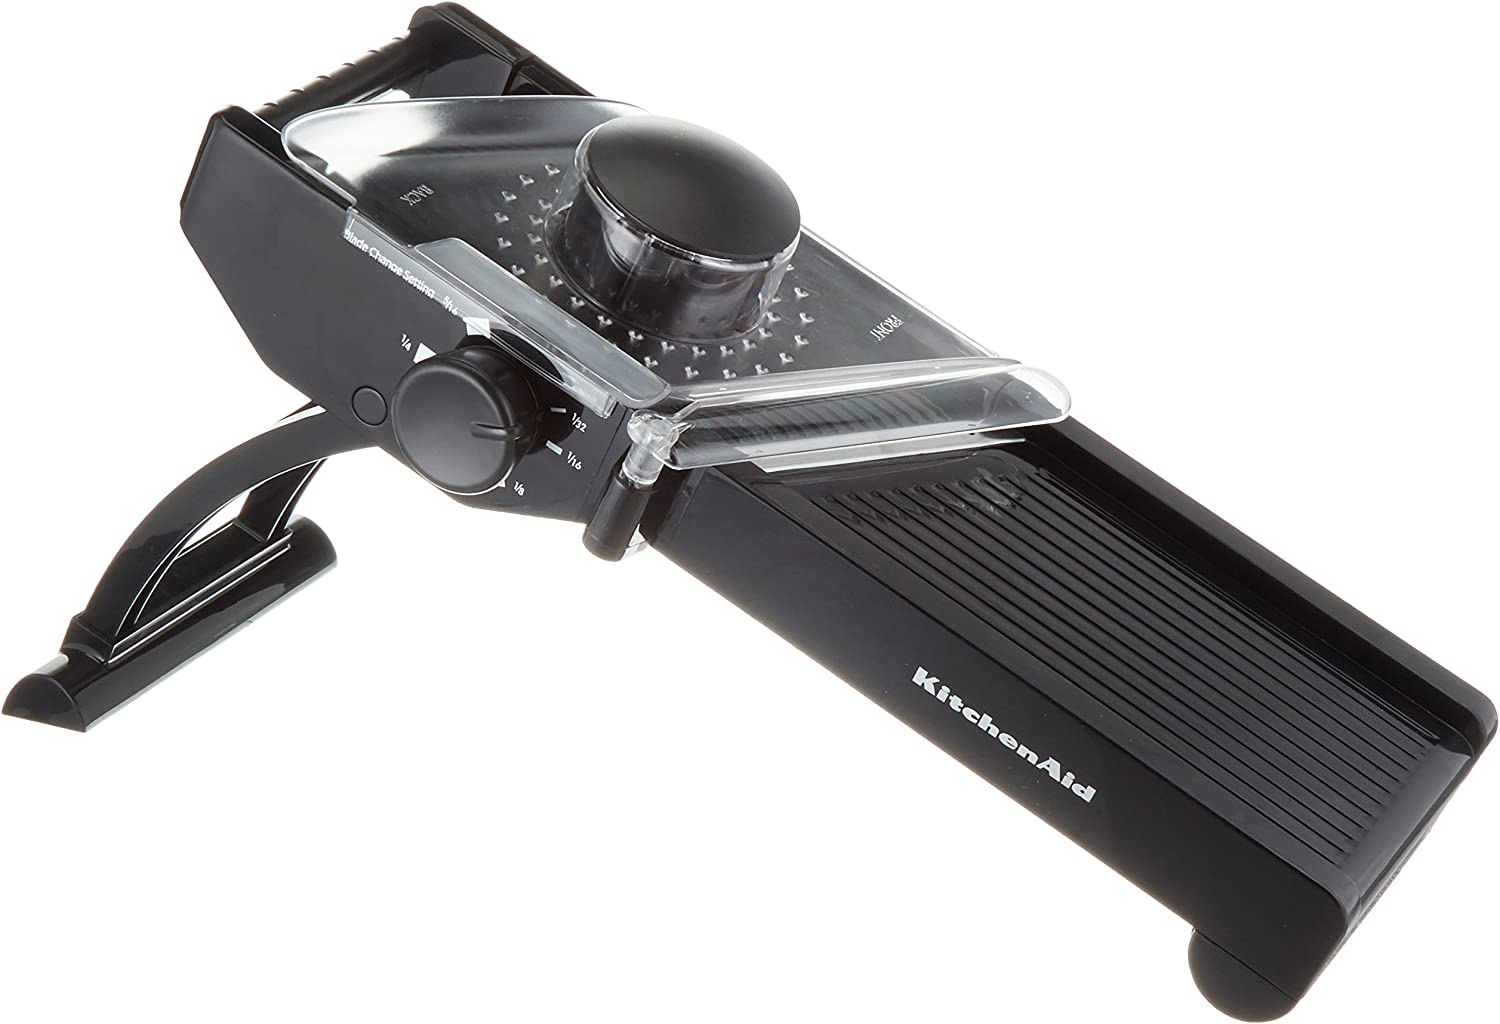 KitchenAid Mandoline Slicer Set - Black